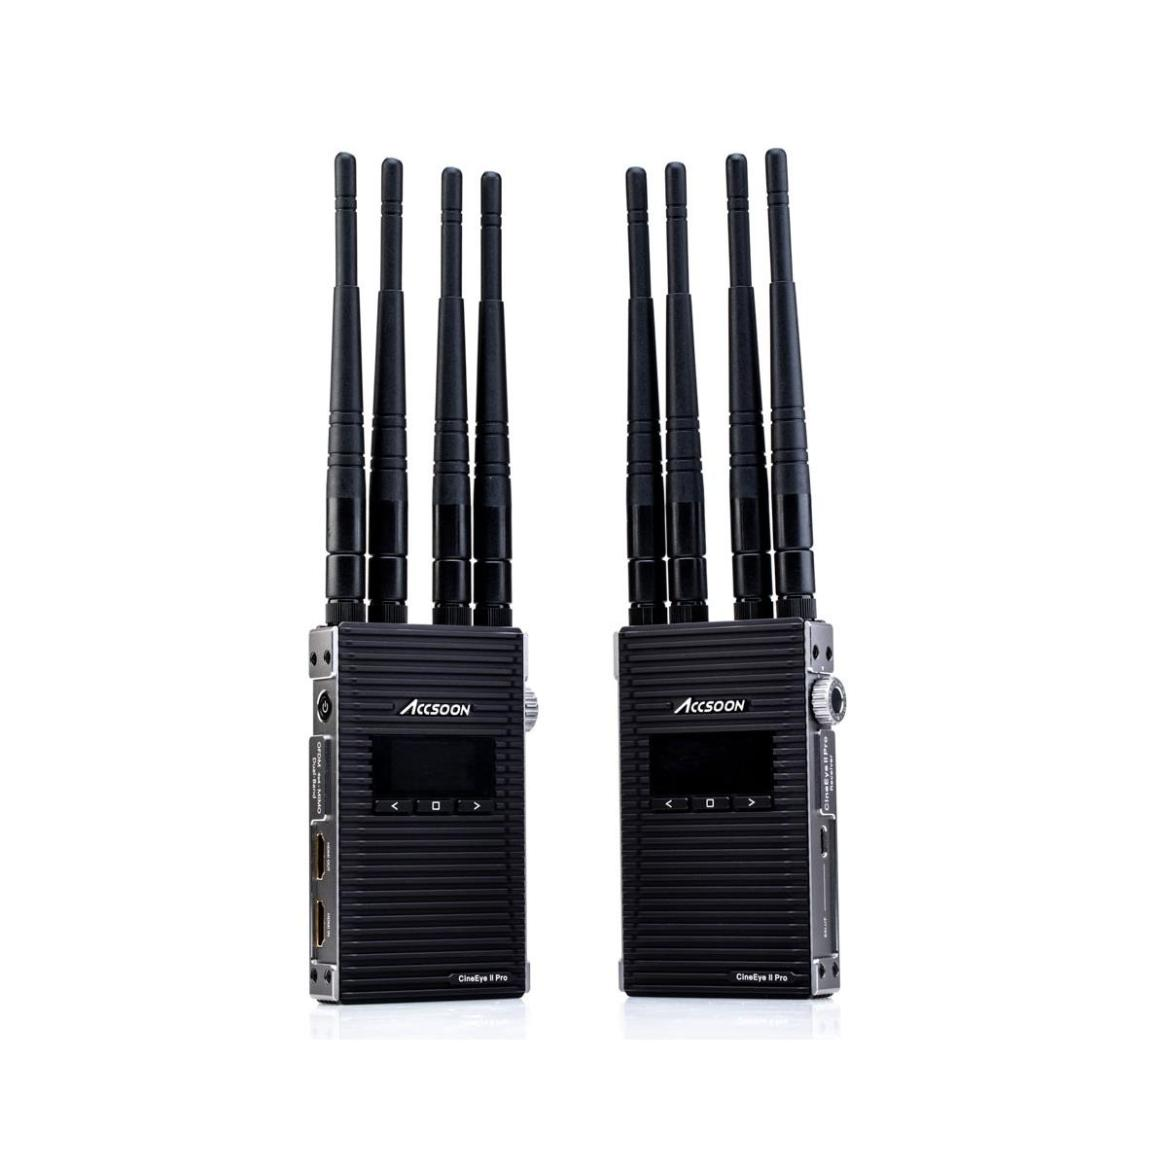 Multispectrum Wireless Video Transmitter and Receiver (Pro)